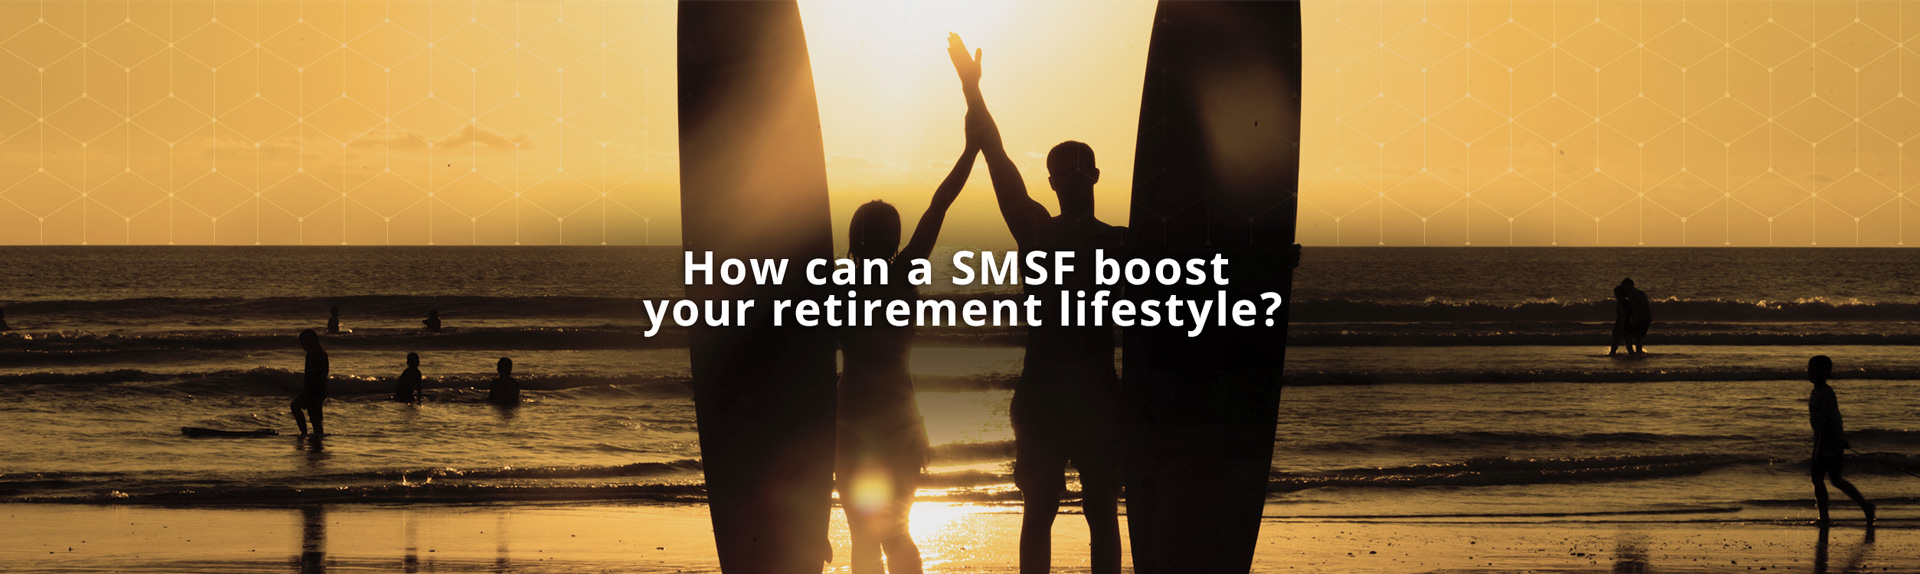 How can a SMSF boost your retirement lifestyle